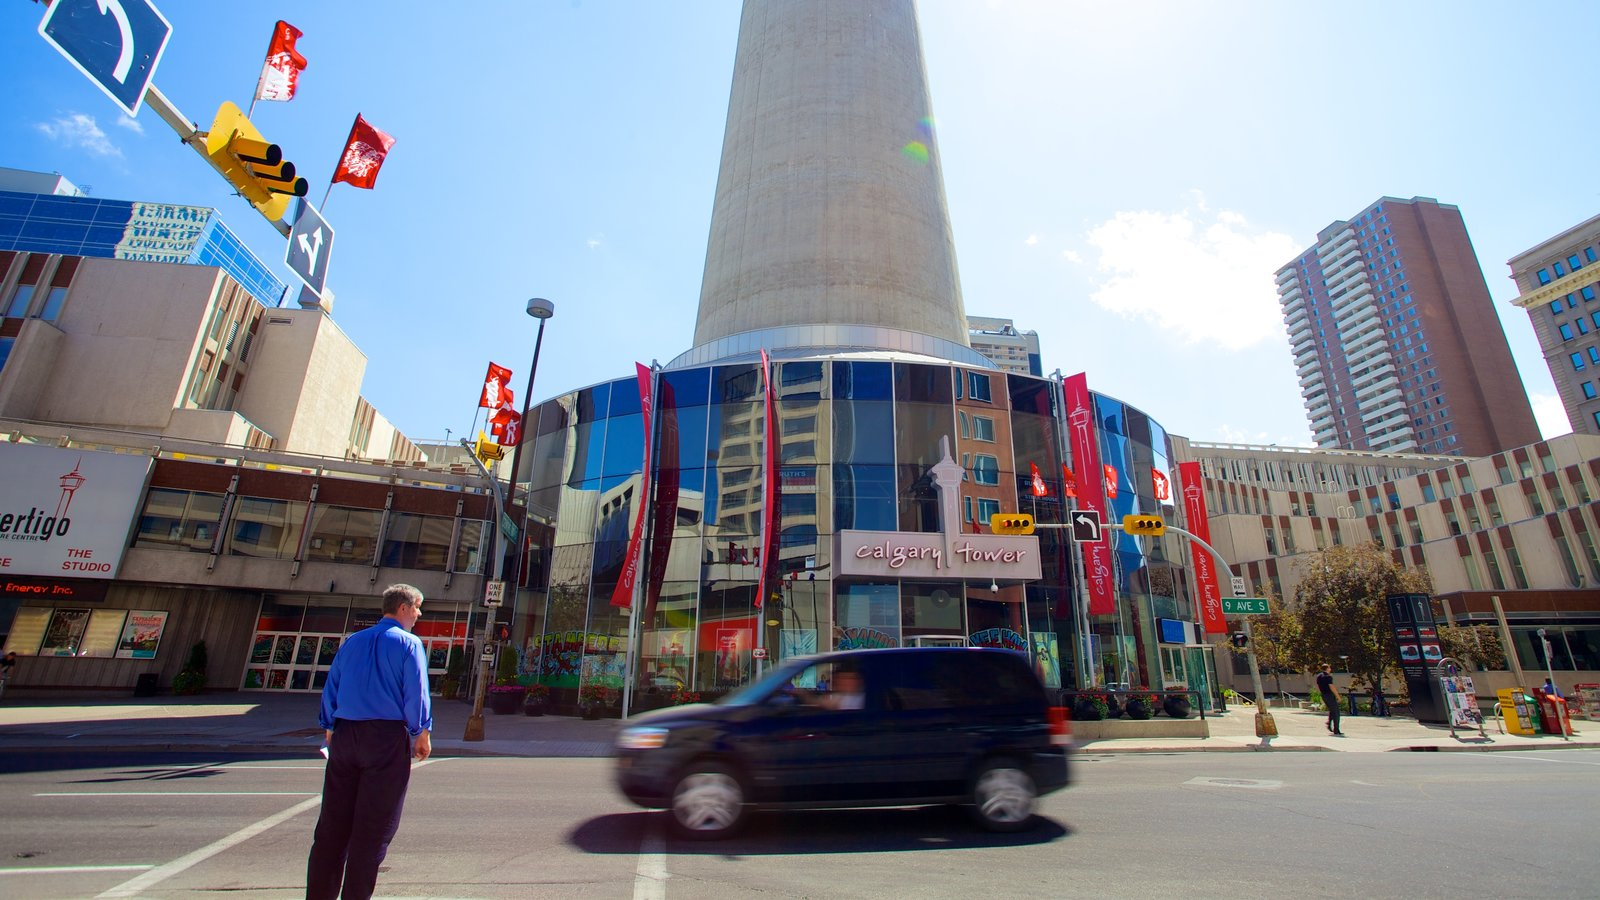 Calgary Tower which includes a city and street scenes as well as an individual male